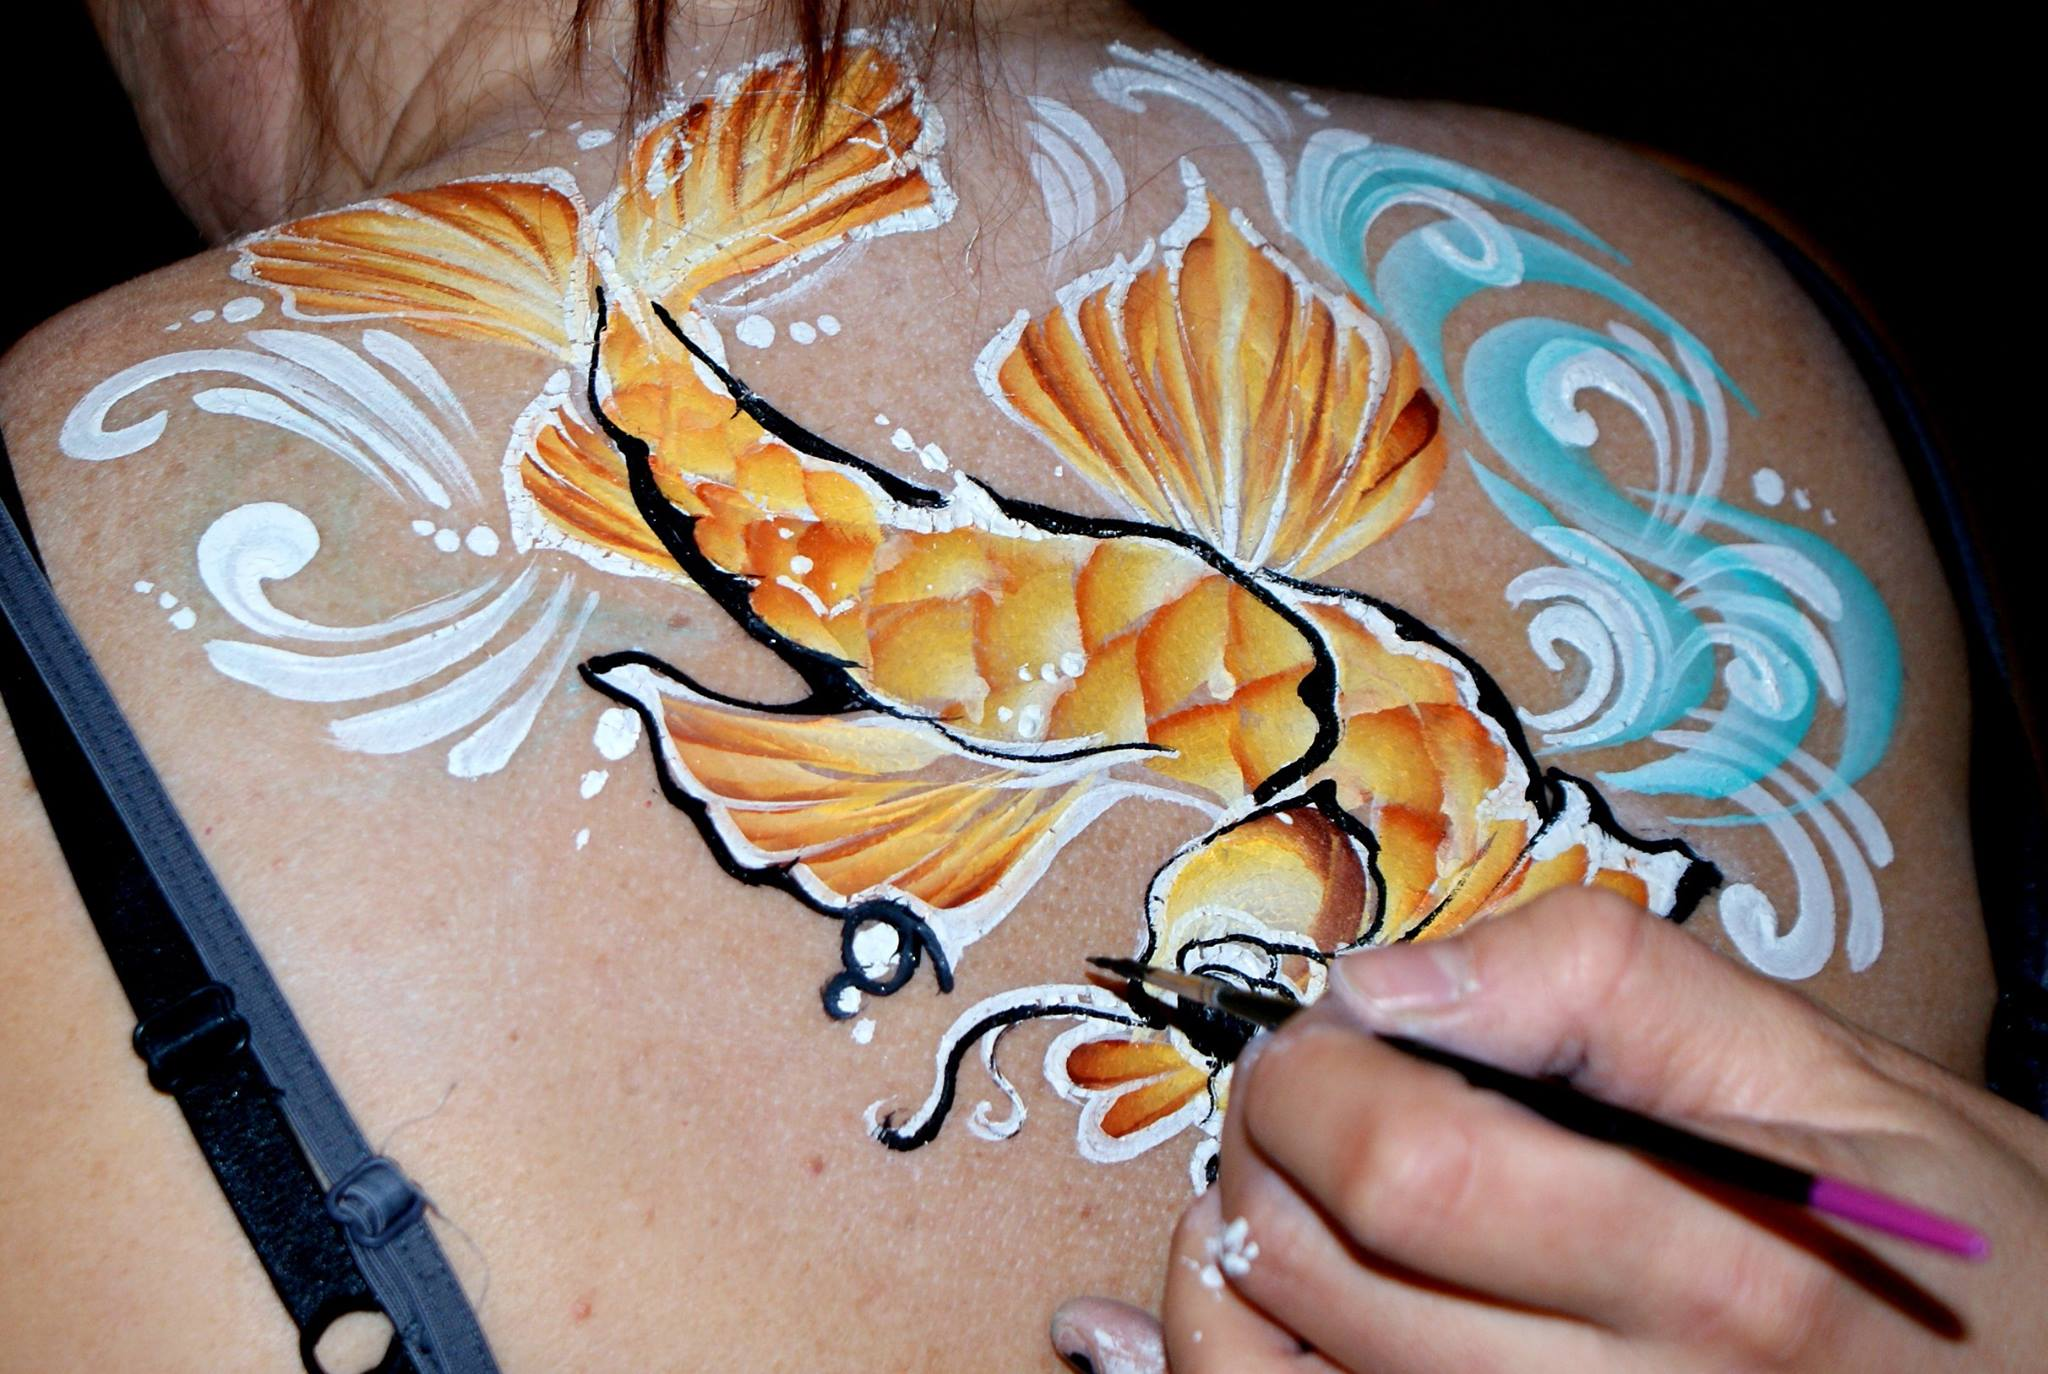 Body Paint at a jam session